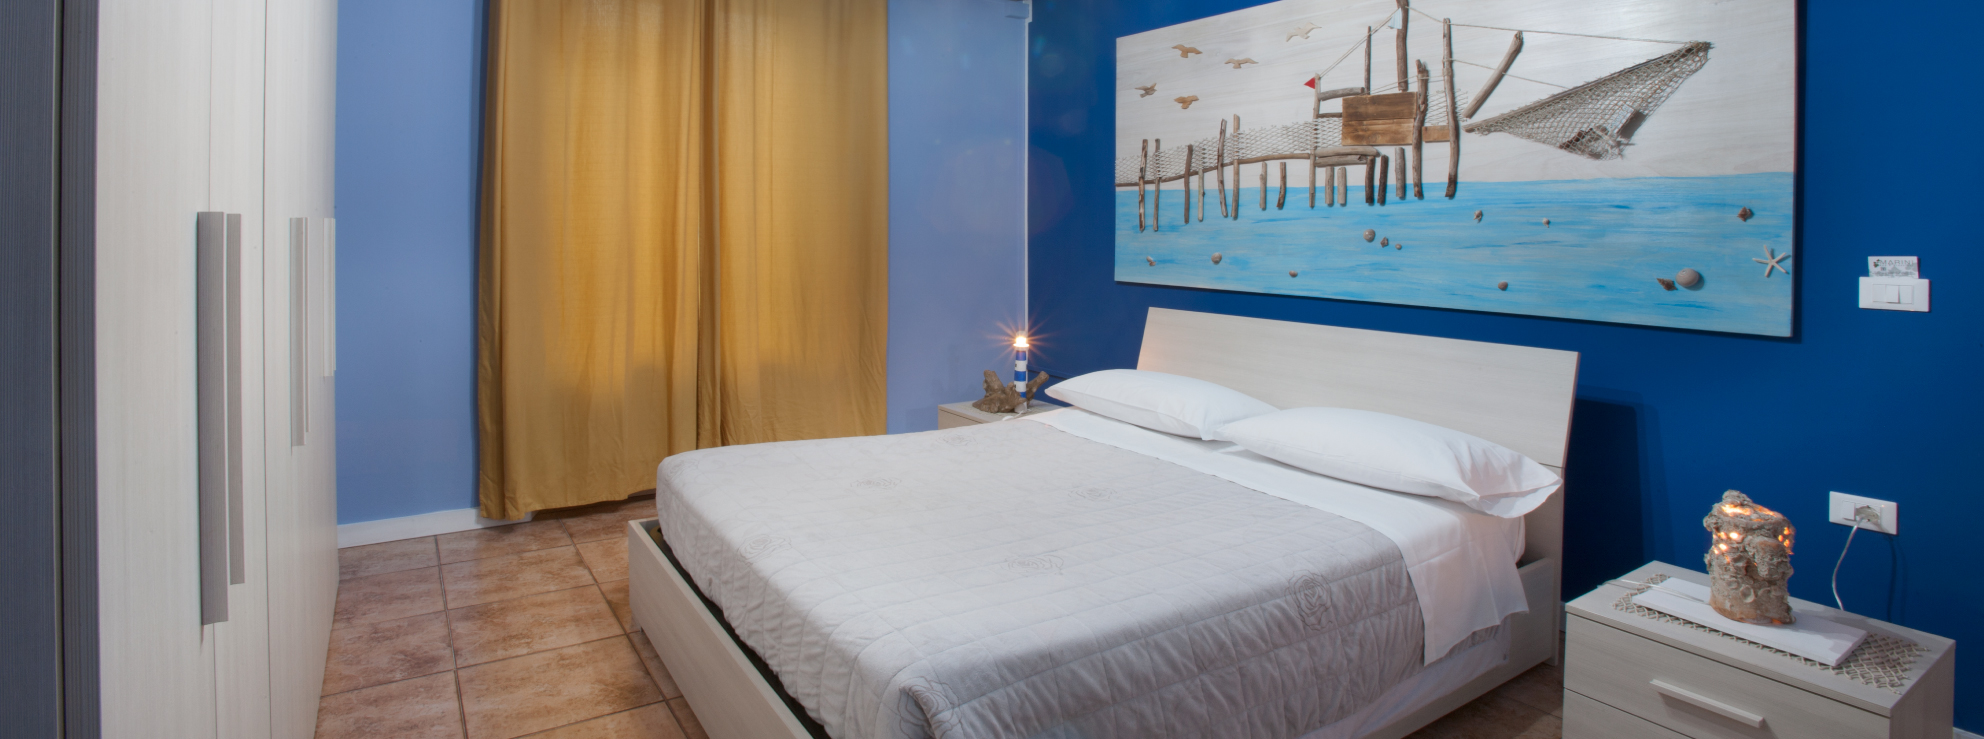 Bed and Breakfast Marini a Pescara